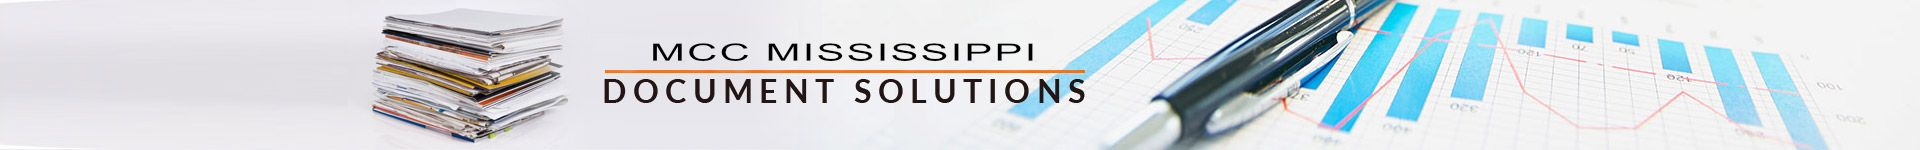 MCC Mississippi High Speed Inkjet Printers